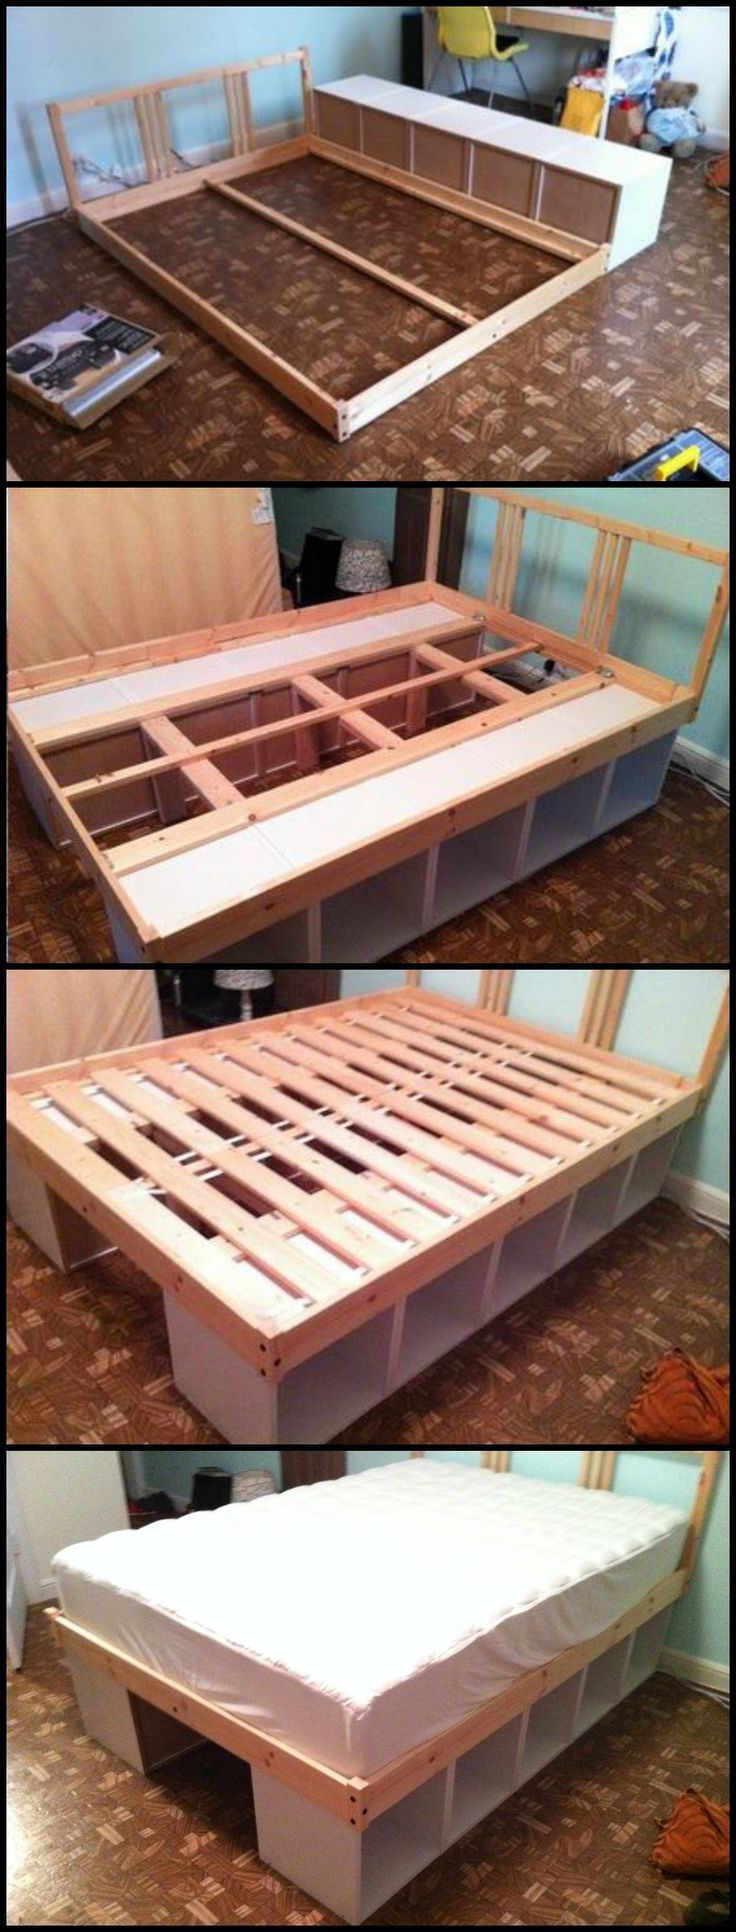 Using Bookcases As A Bed Frame Is One Easy Way To Build A Bed With